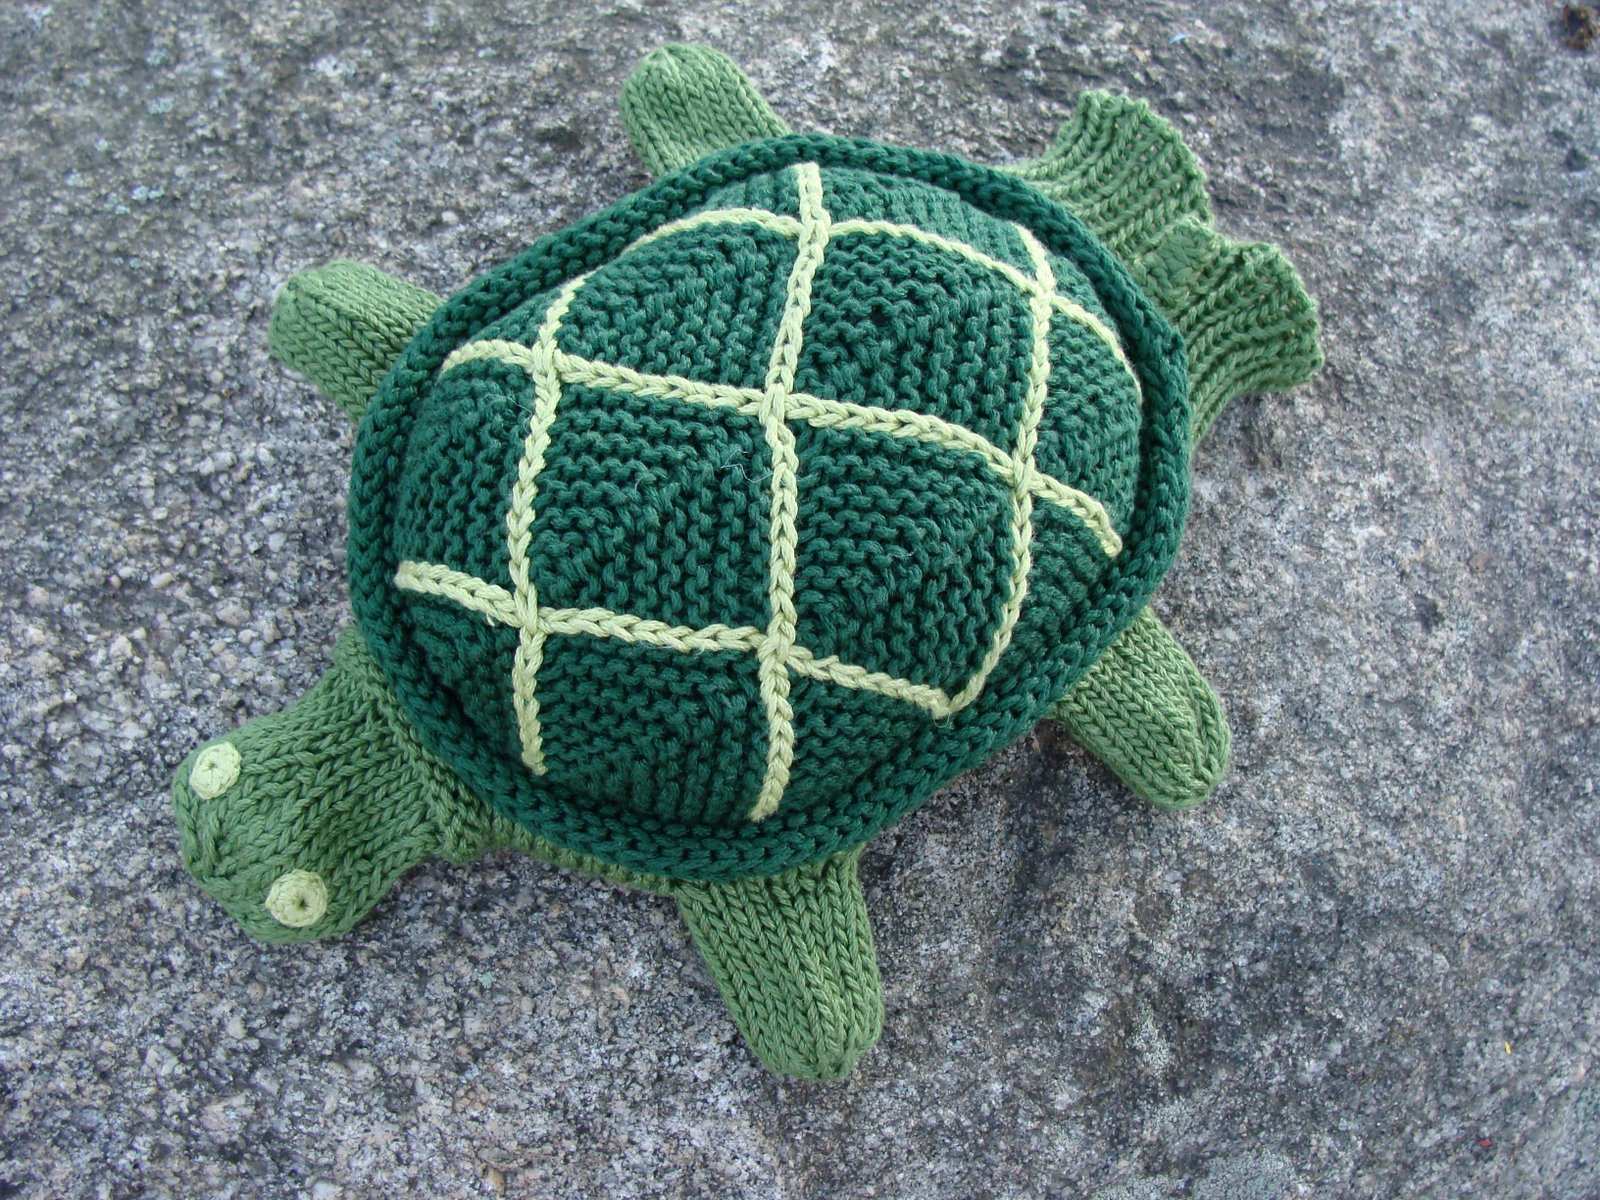 Knitted Turtle Pattern : The Mermaids Purse: Glove Puppet Knitting Patterns and Tutorials